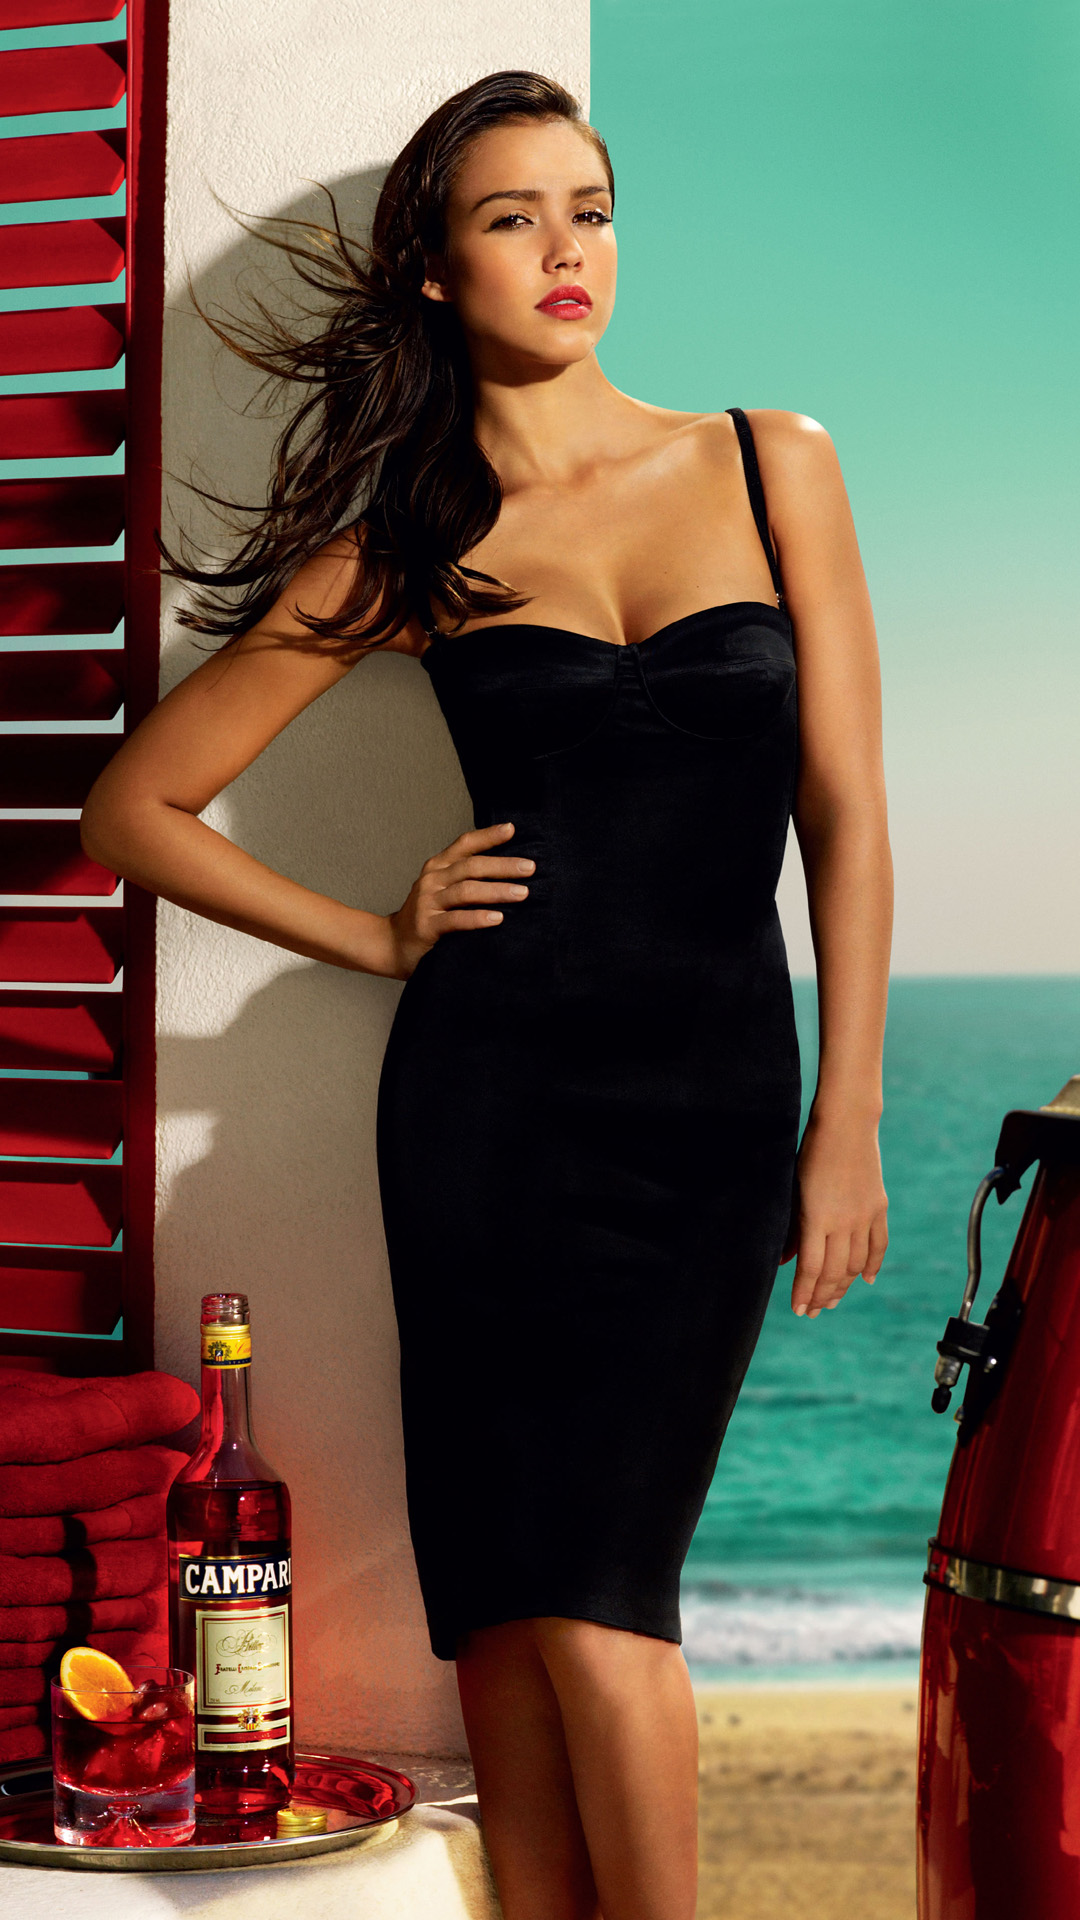 Easy A Girl Wallpapers Jessica Alba Summer Campari Best Htc One Wallpapers